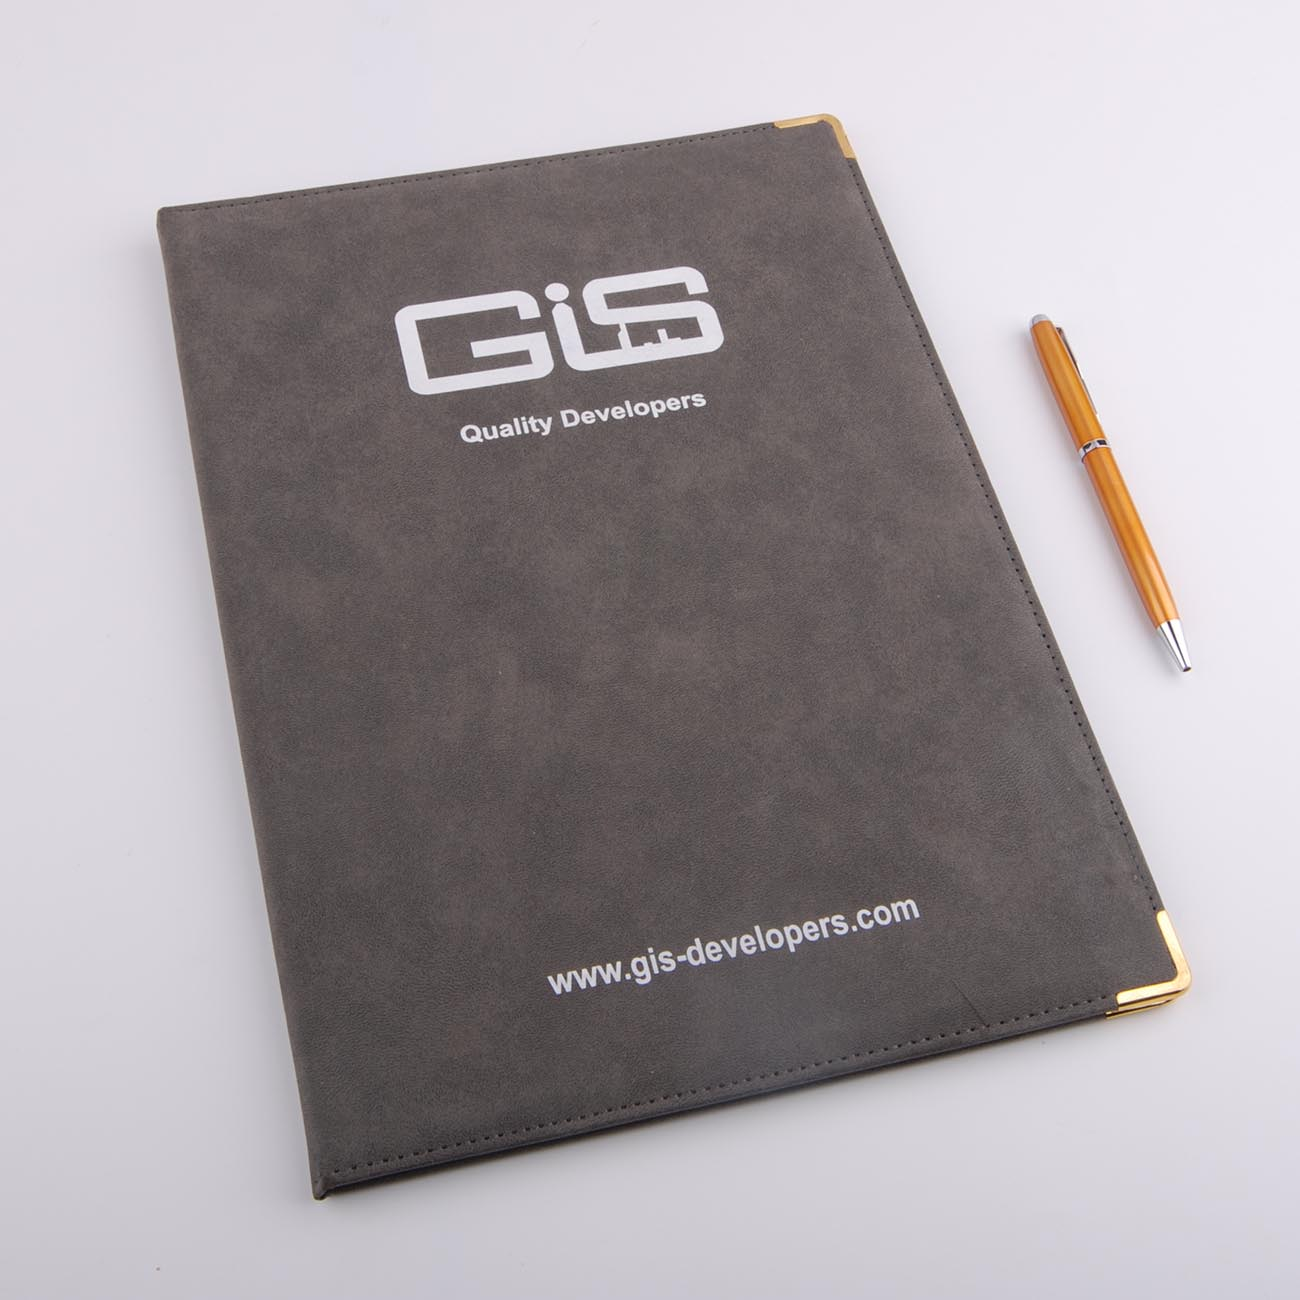 http://www.best-notebook.com/data/images/product/20170904114556_575.jpg